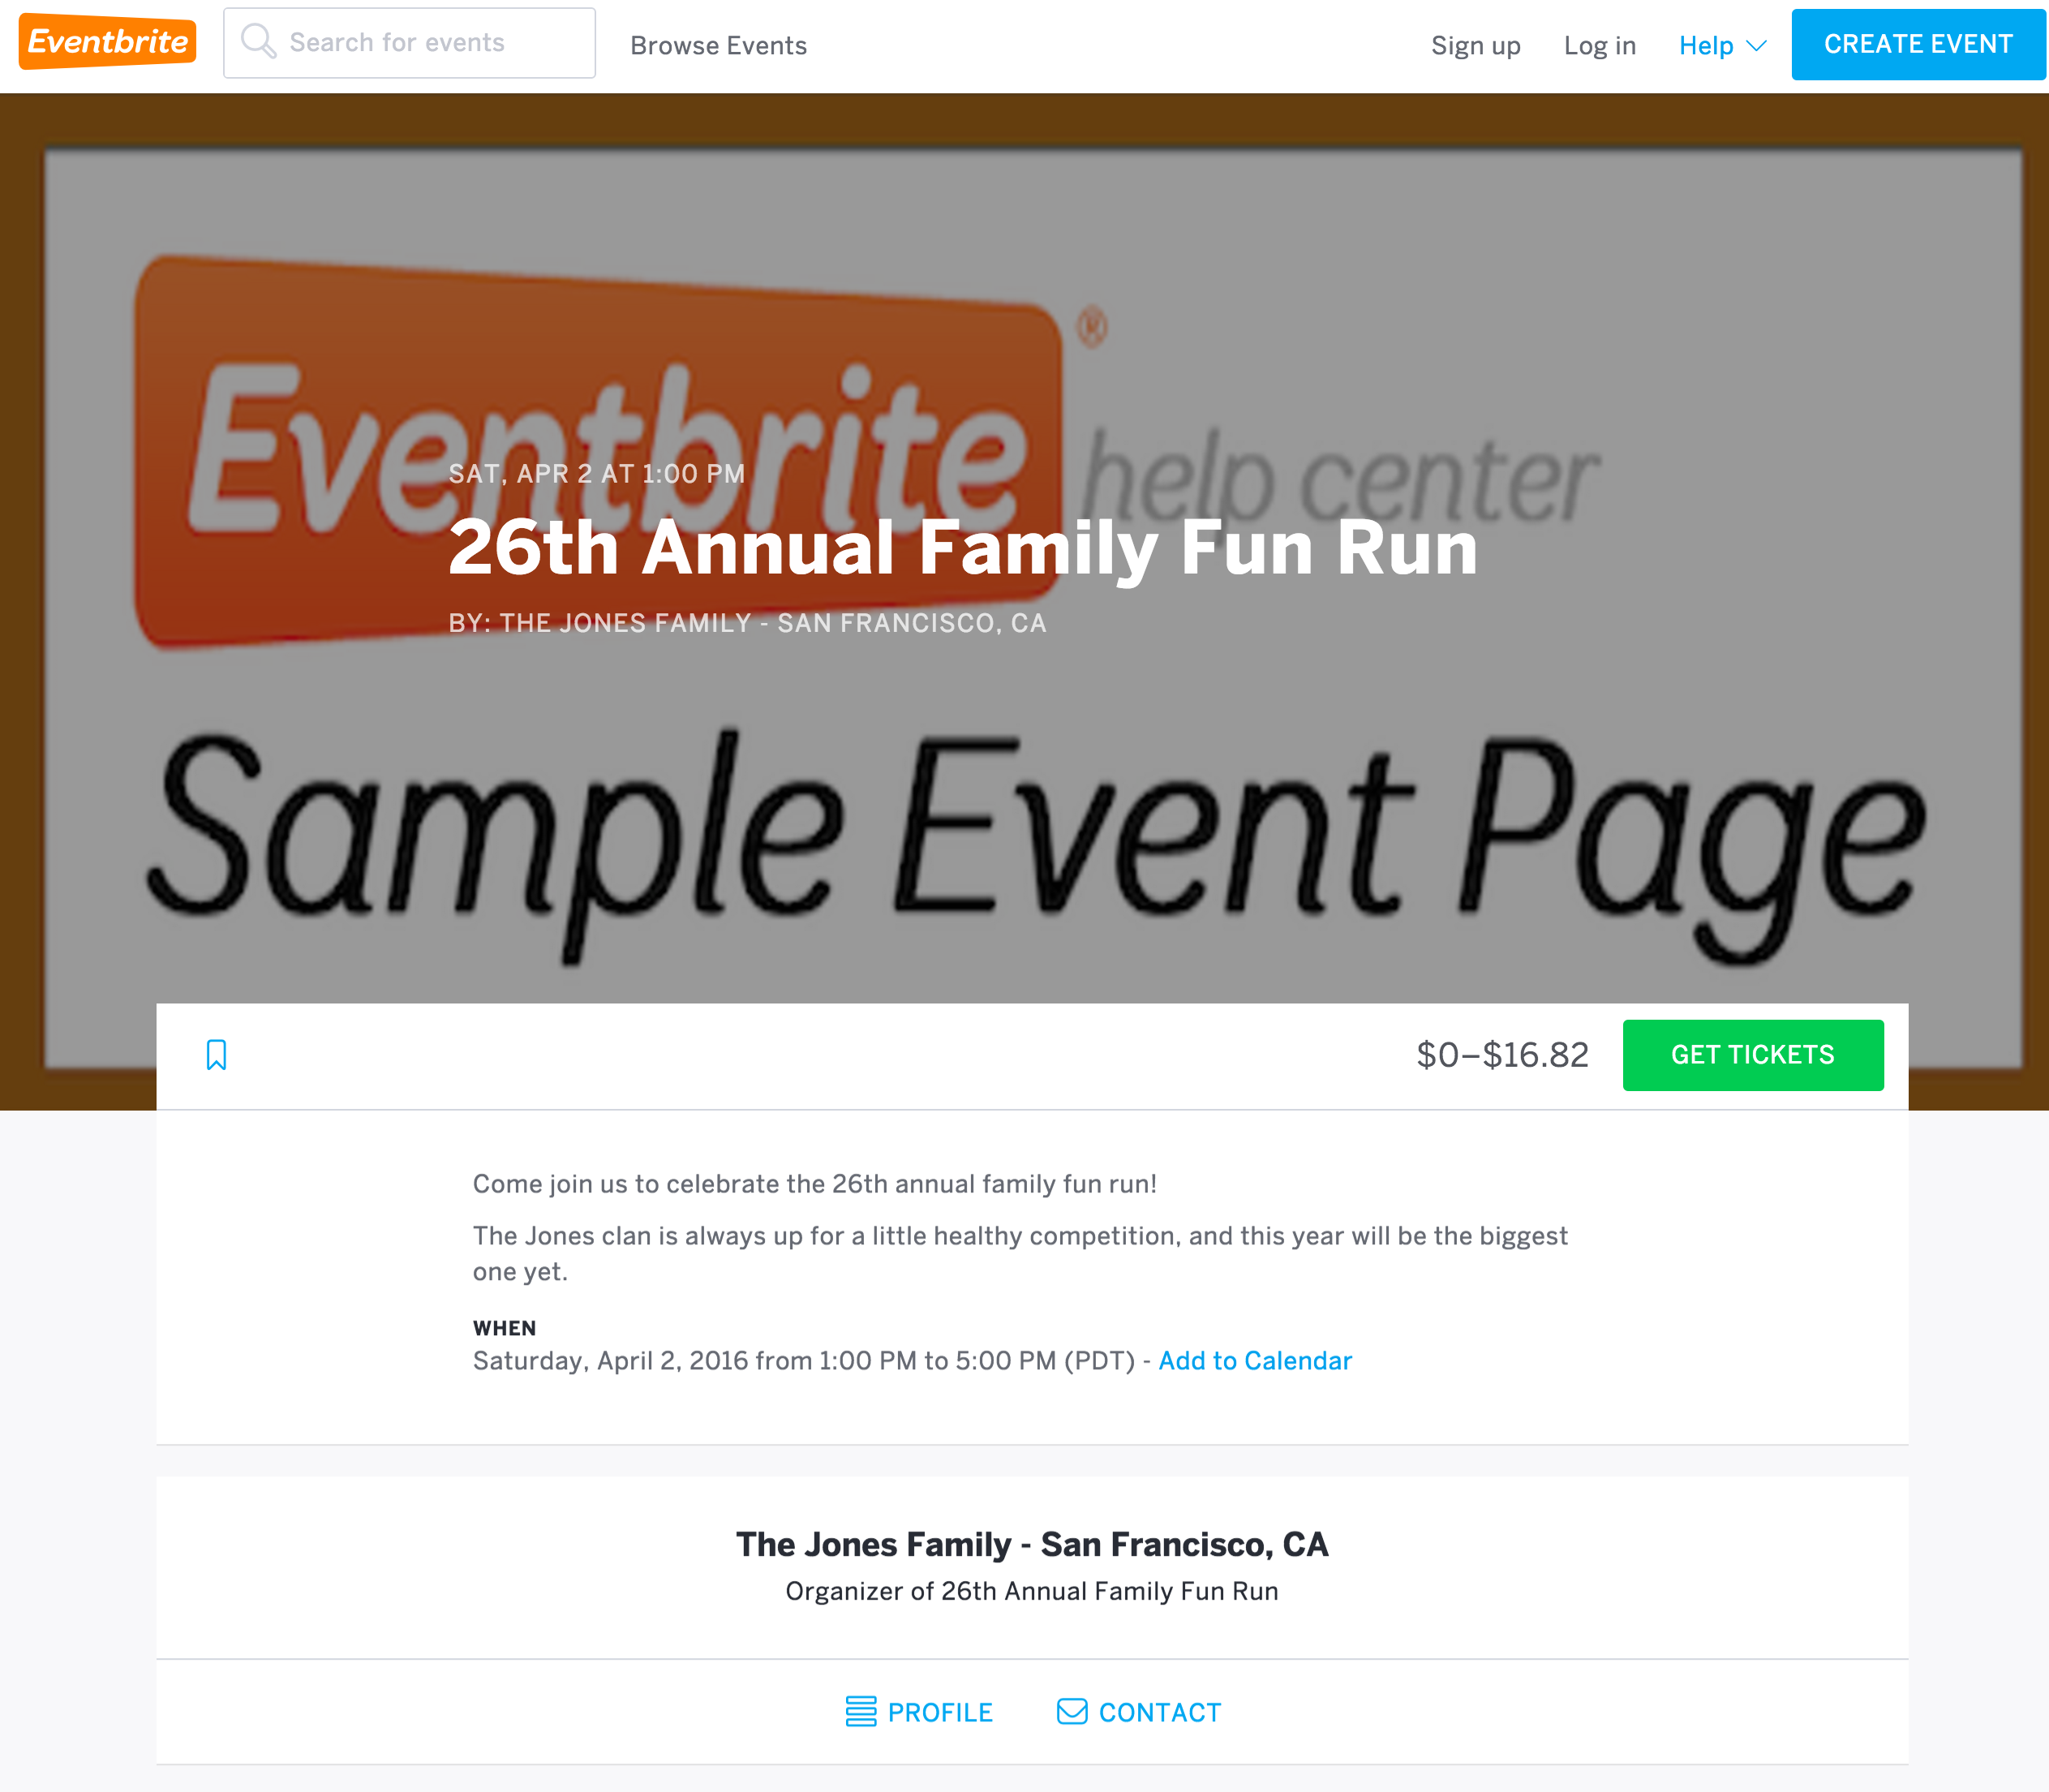 The button for registration (commonly labeled Tickets or Register) is located in the Ticket Information section of the event listing, next to the ticket price or range of prices depending on the organizer's event settings.